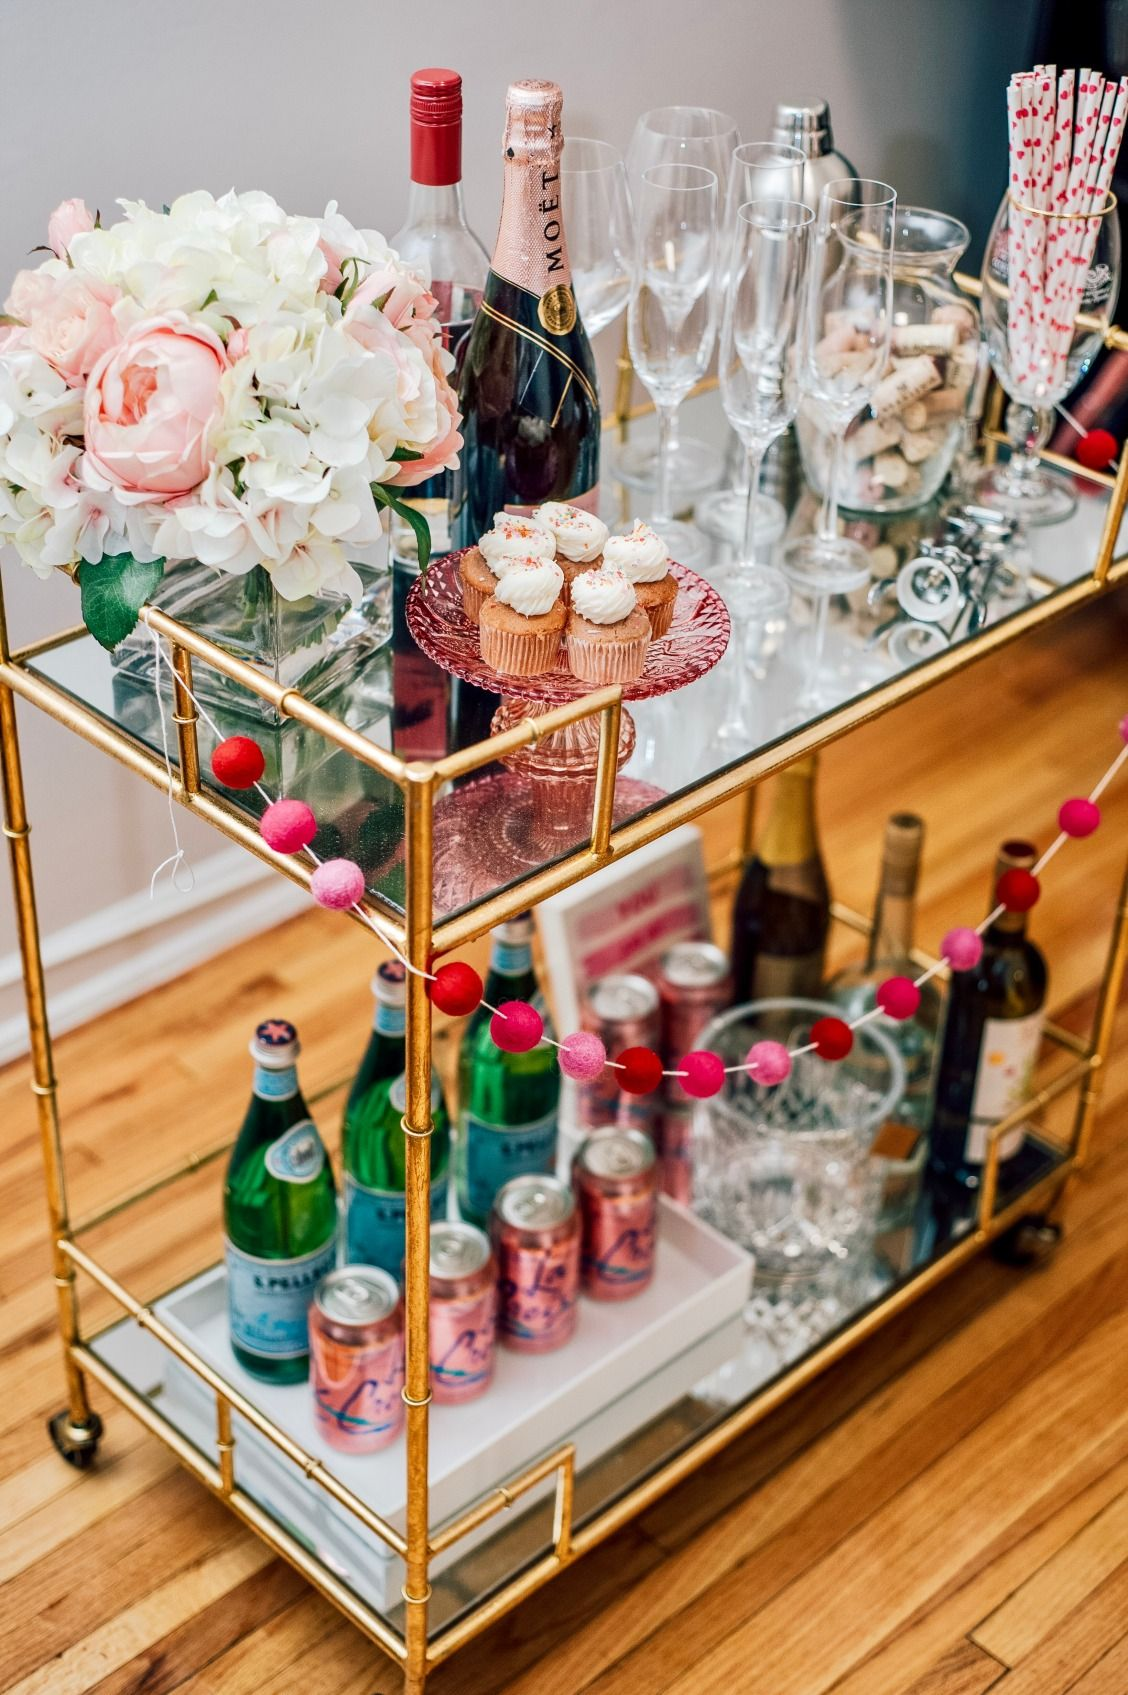 12 Best Bar Cart Ideas - How To Make Diy Custom Bar Cart | Ev için ...